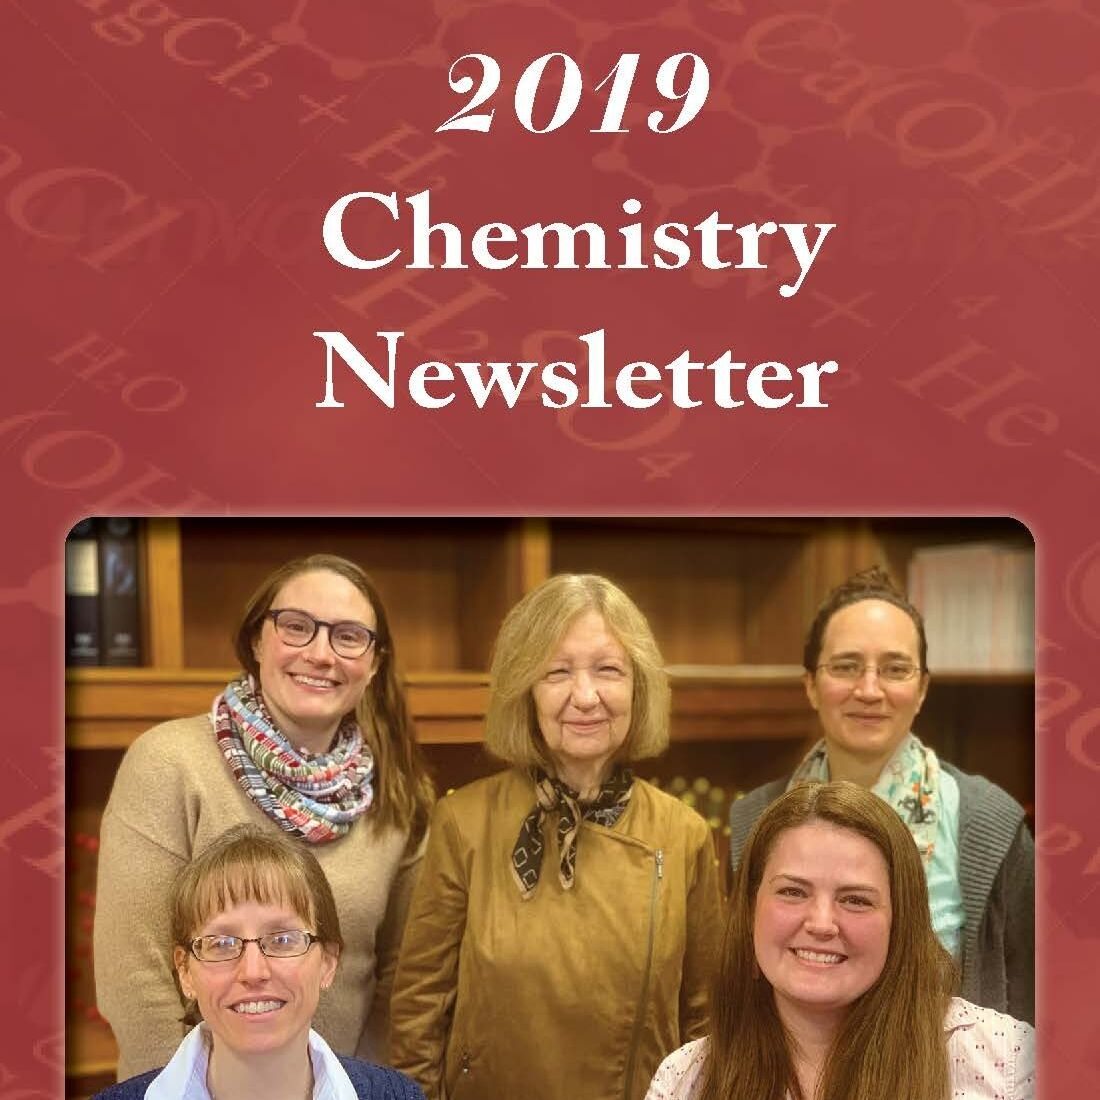 Cover of the 2019 Chemistry Newsletter